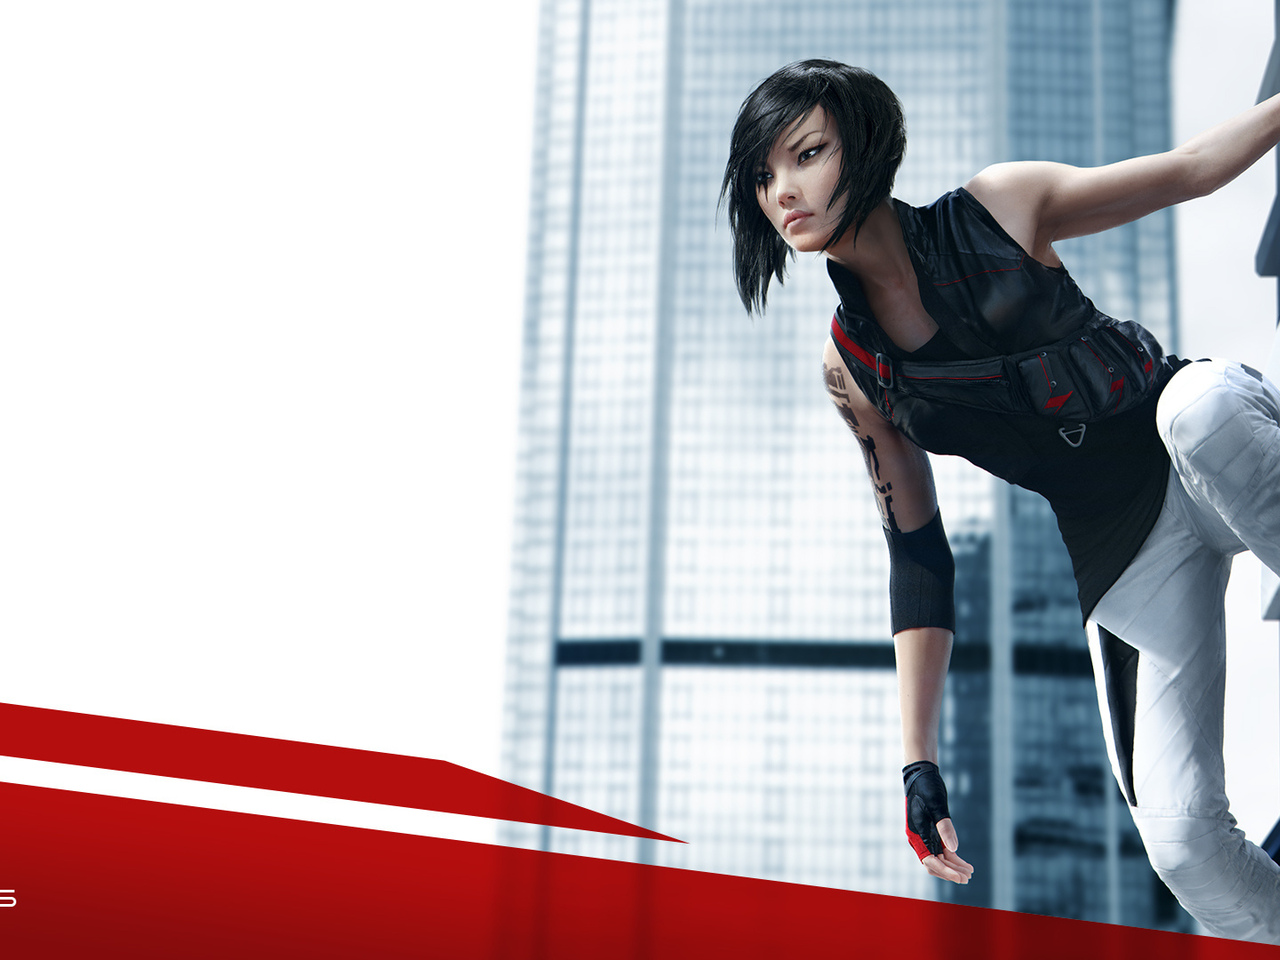 dice, mirrors edge, mirrors edge 2, wallpaper, faith, game